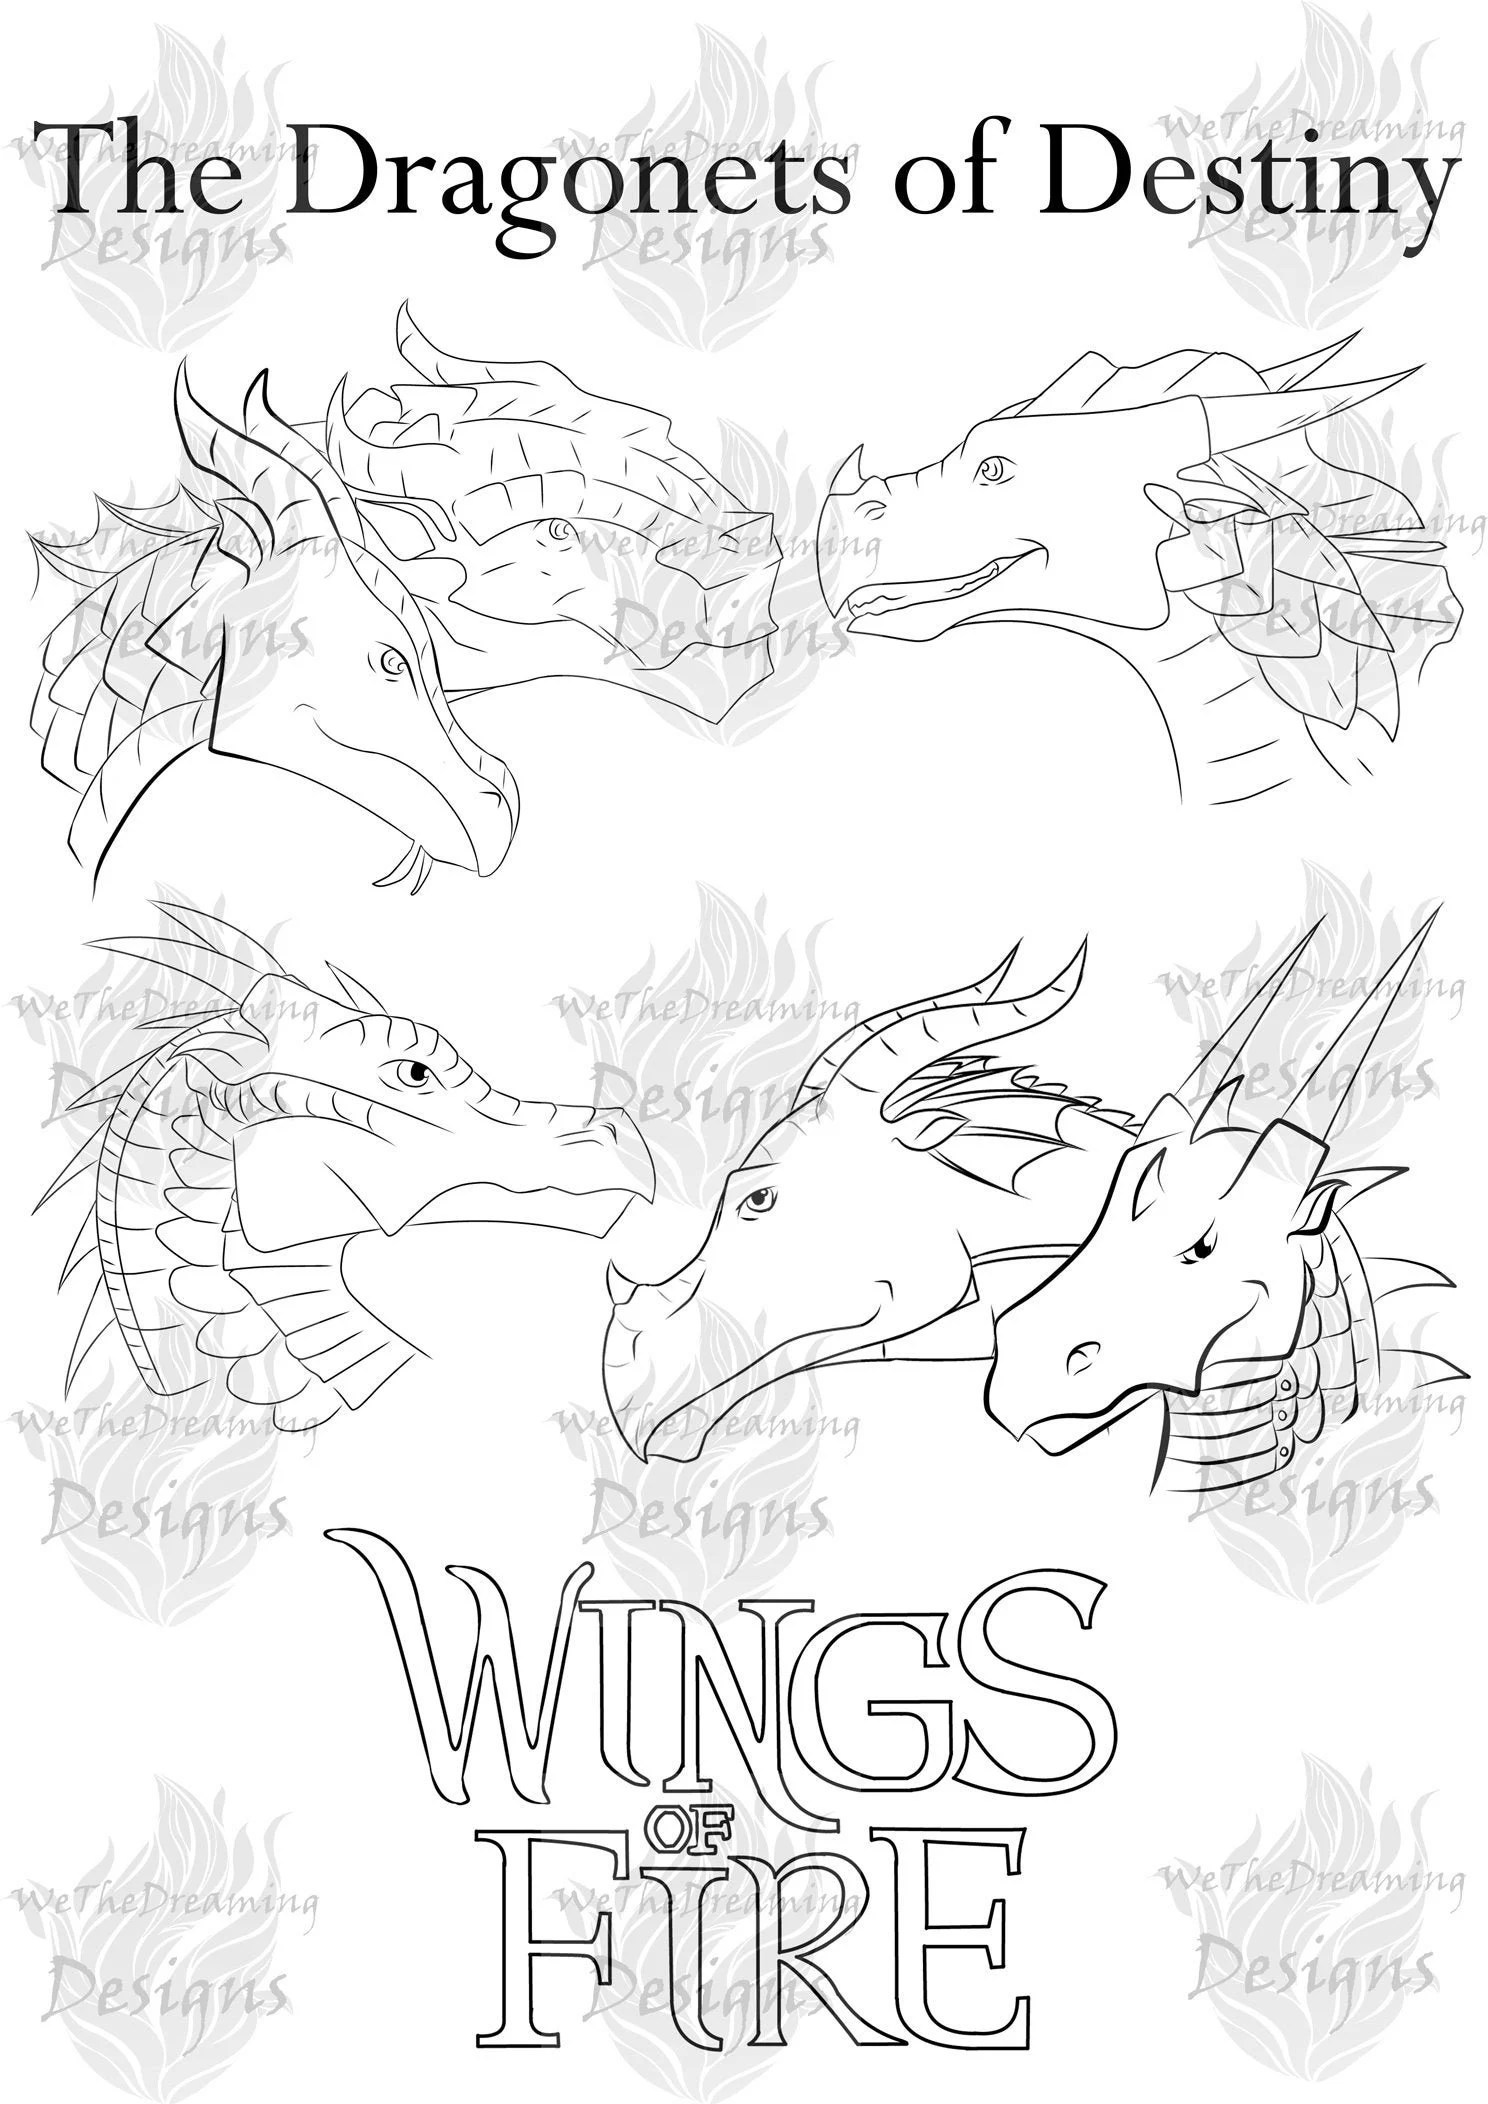 Wings Of Fire Dragon Coloring Pages : wings, dragon, coloring, pages, Wings, DRAGONETS, DESTINY, Printable, Coloring